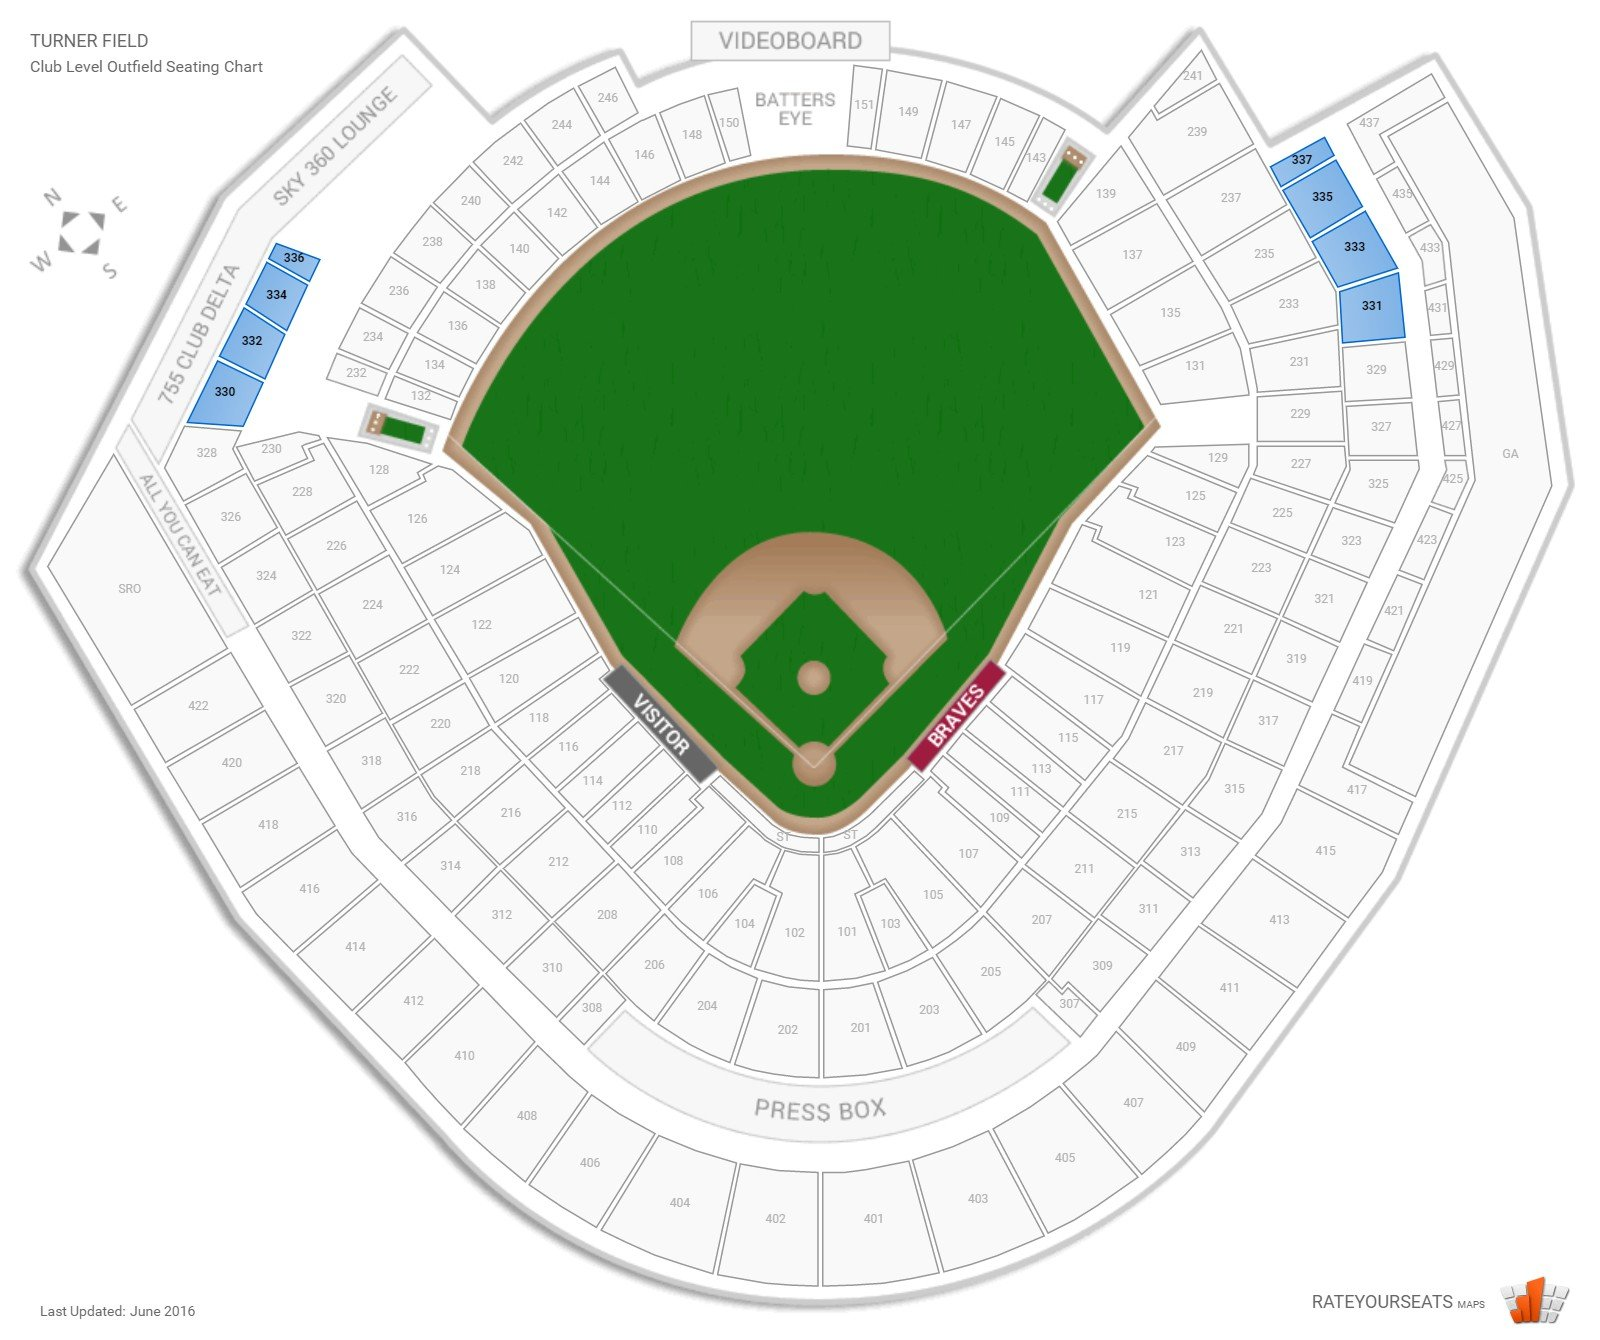 Turner Field Club Level Outfield seating chart